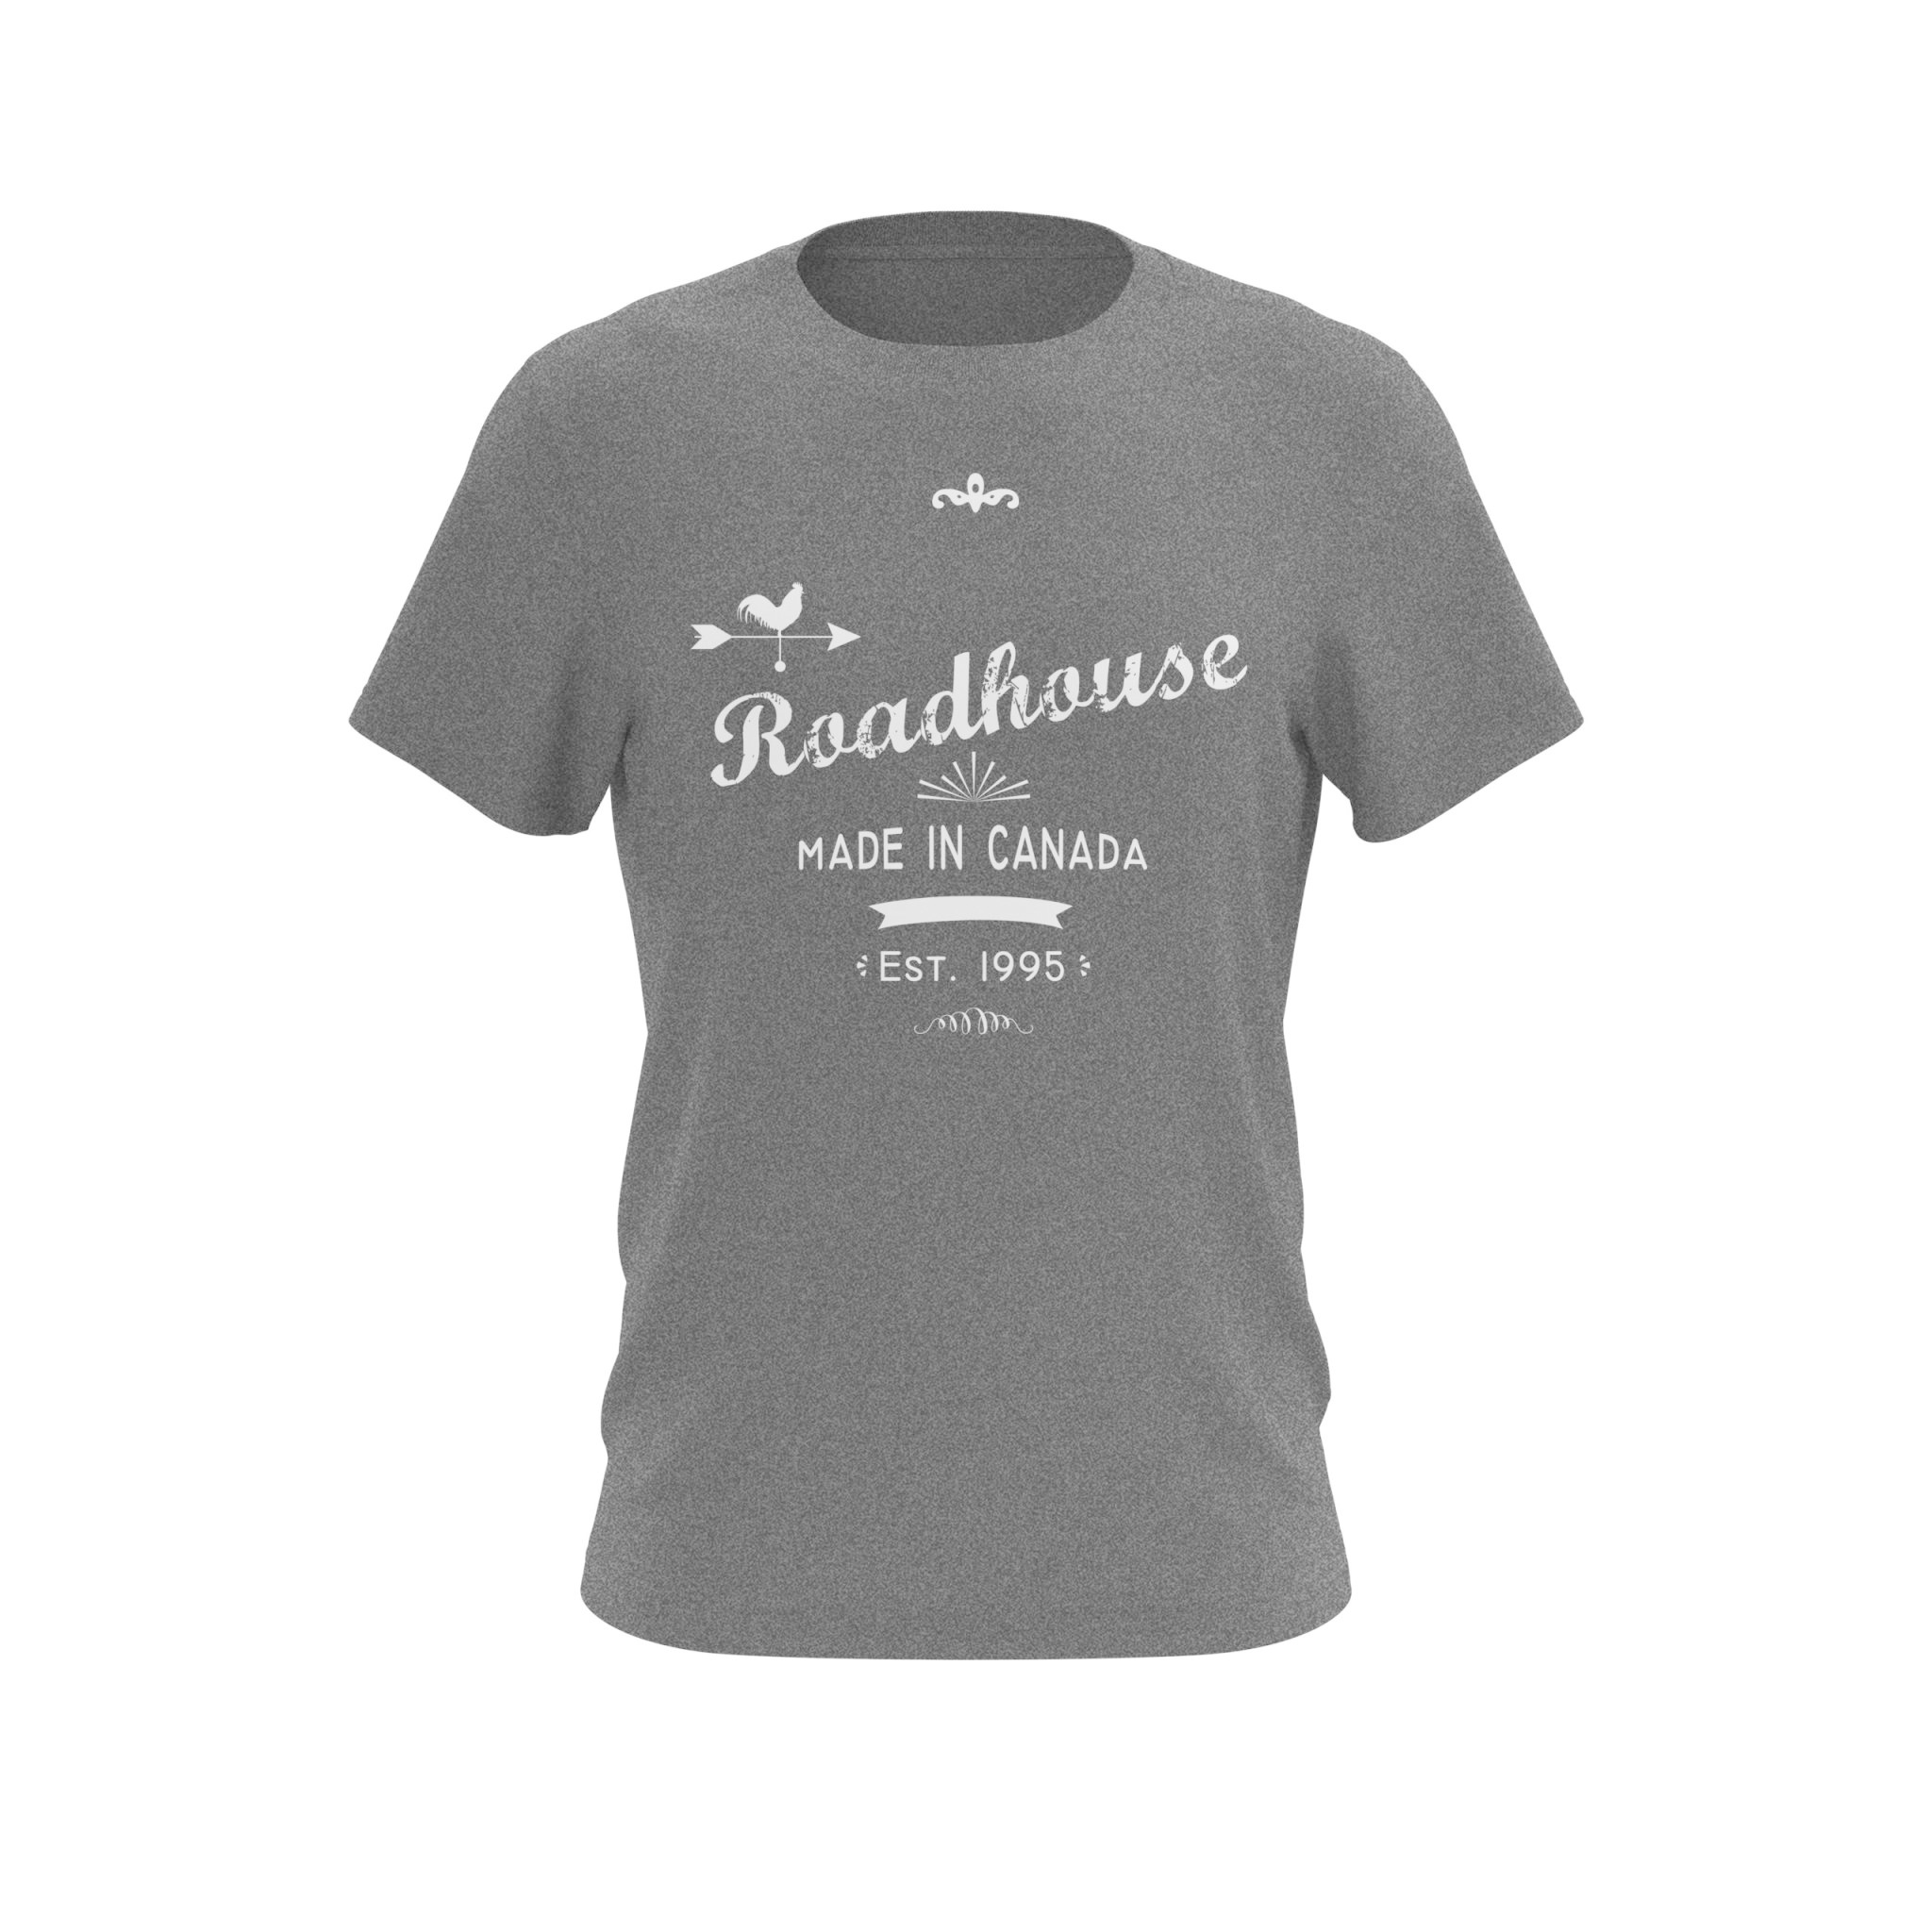 ART & LUTHERIE T-SHIRT ART & LUTHERIE ROADHOUSE